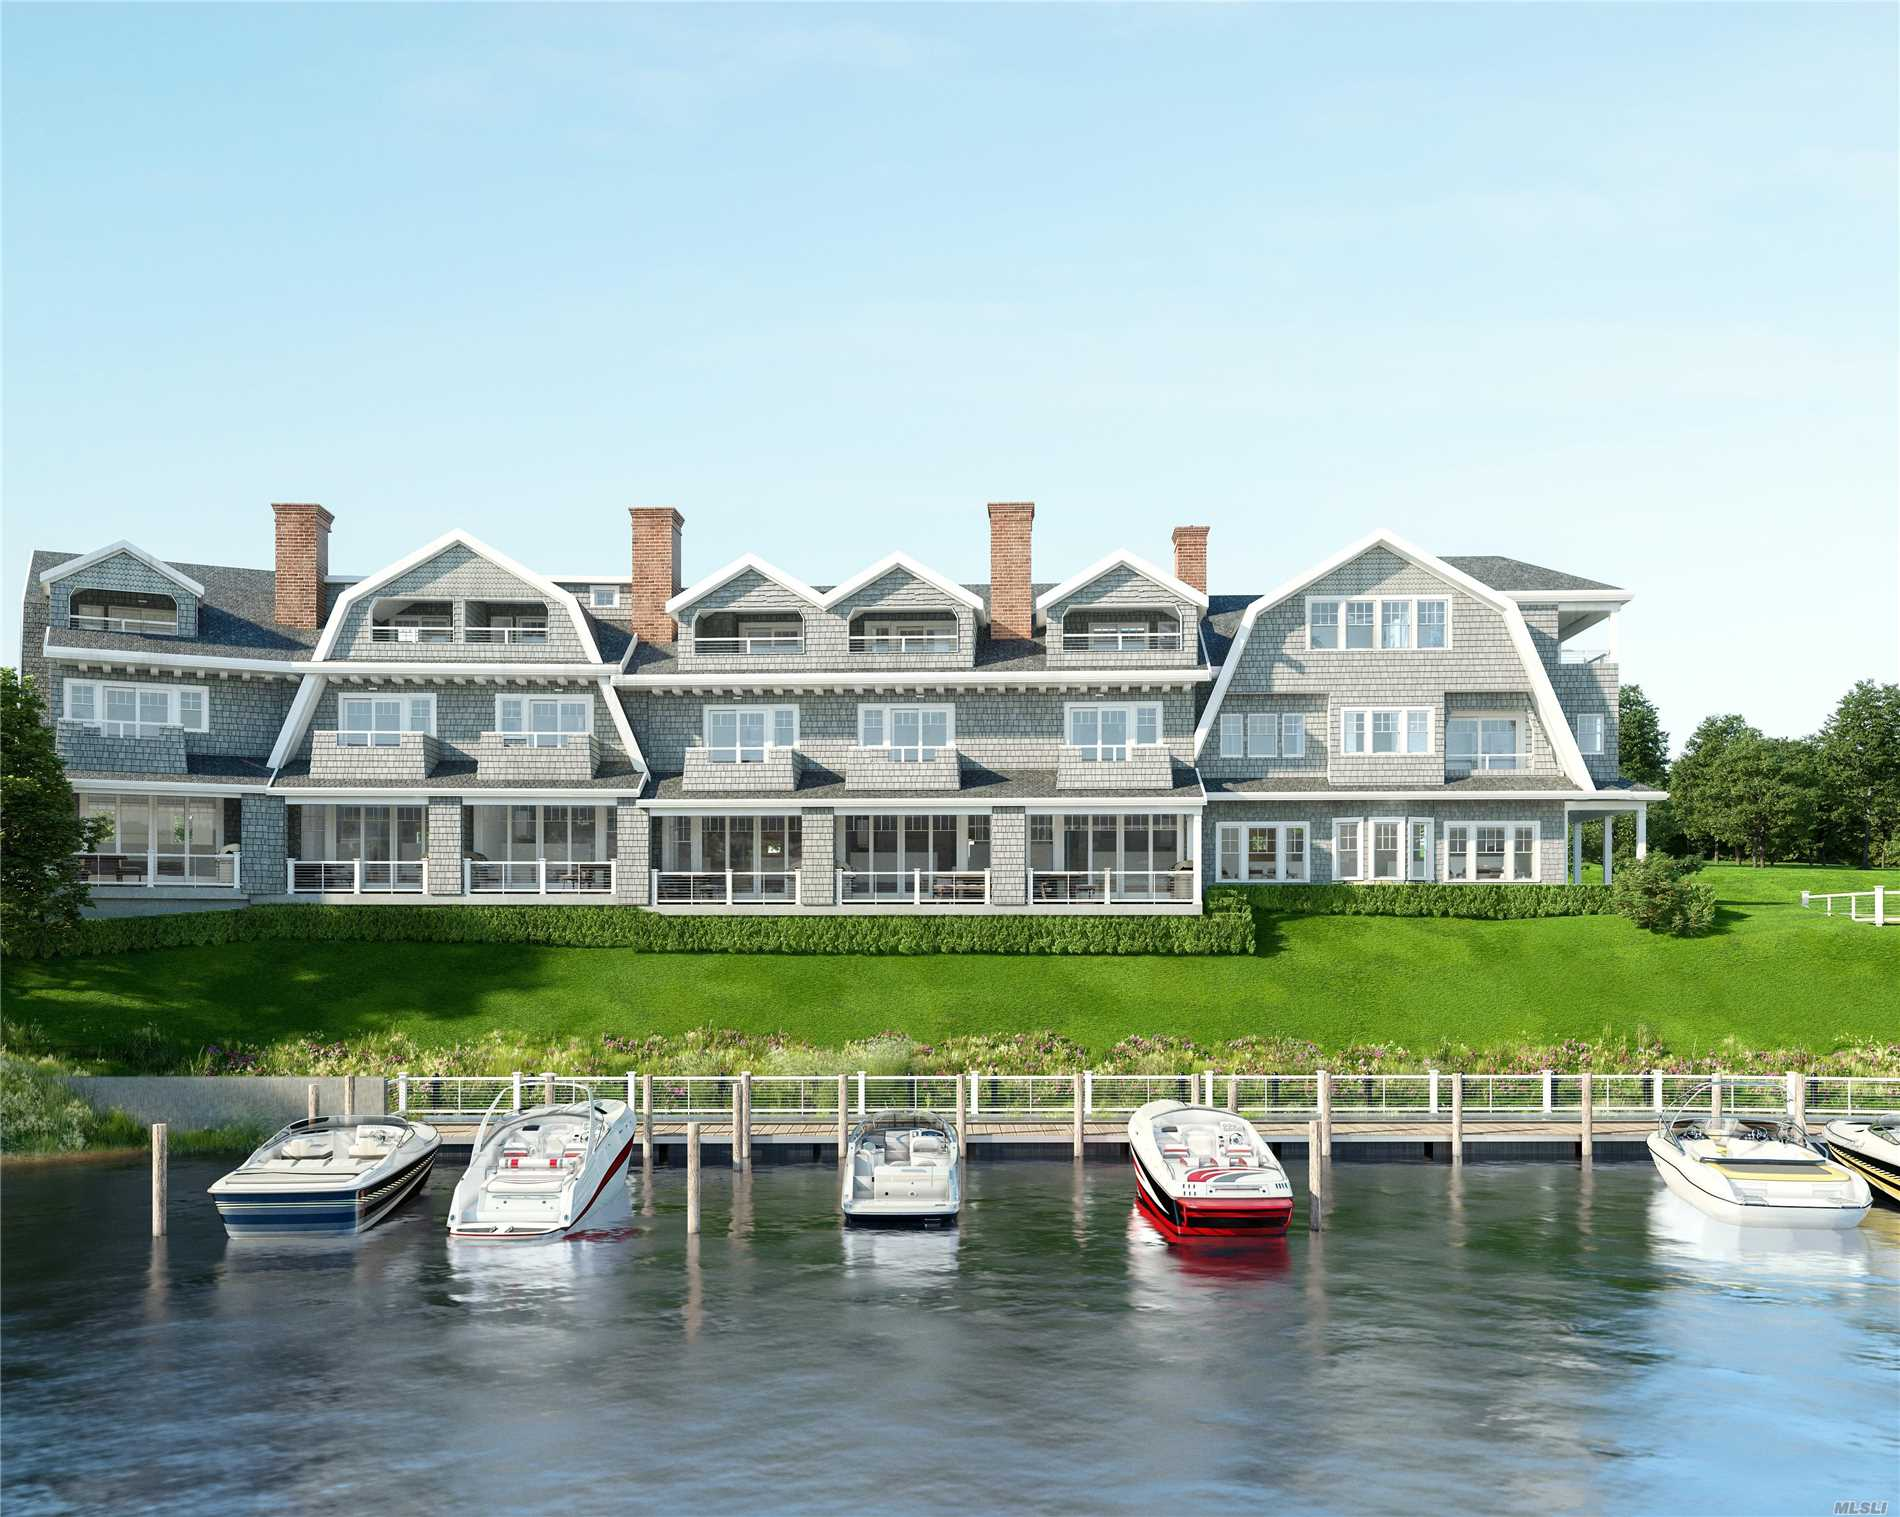 Property for sale at 37 Old Boathouse Ln Unit 401, Hampton Bays,  New York 11946